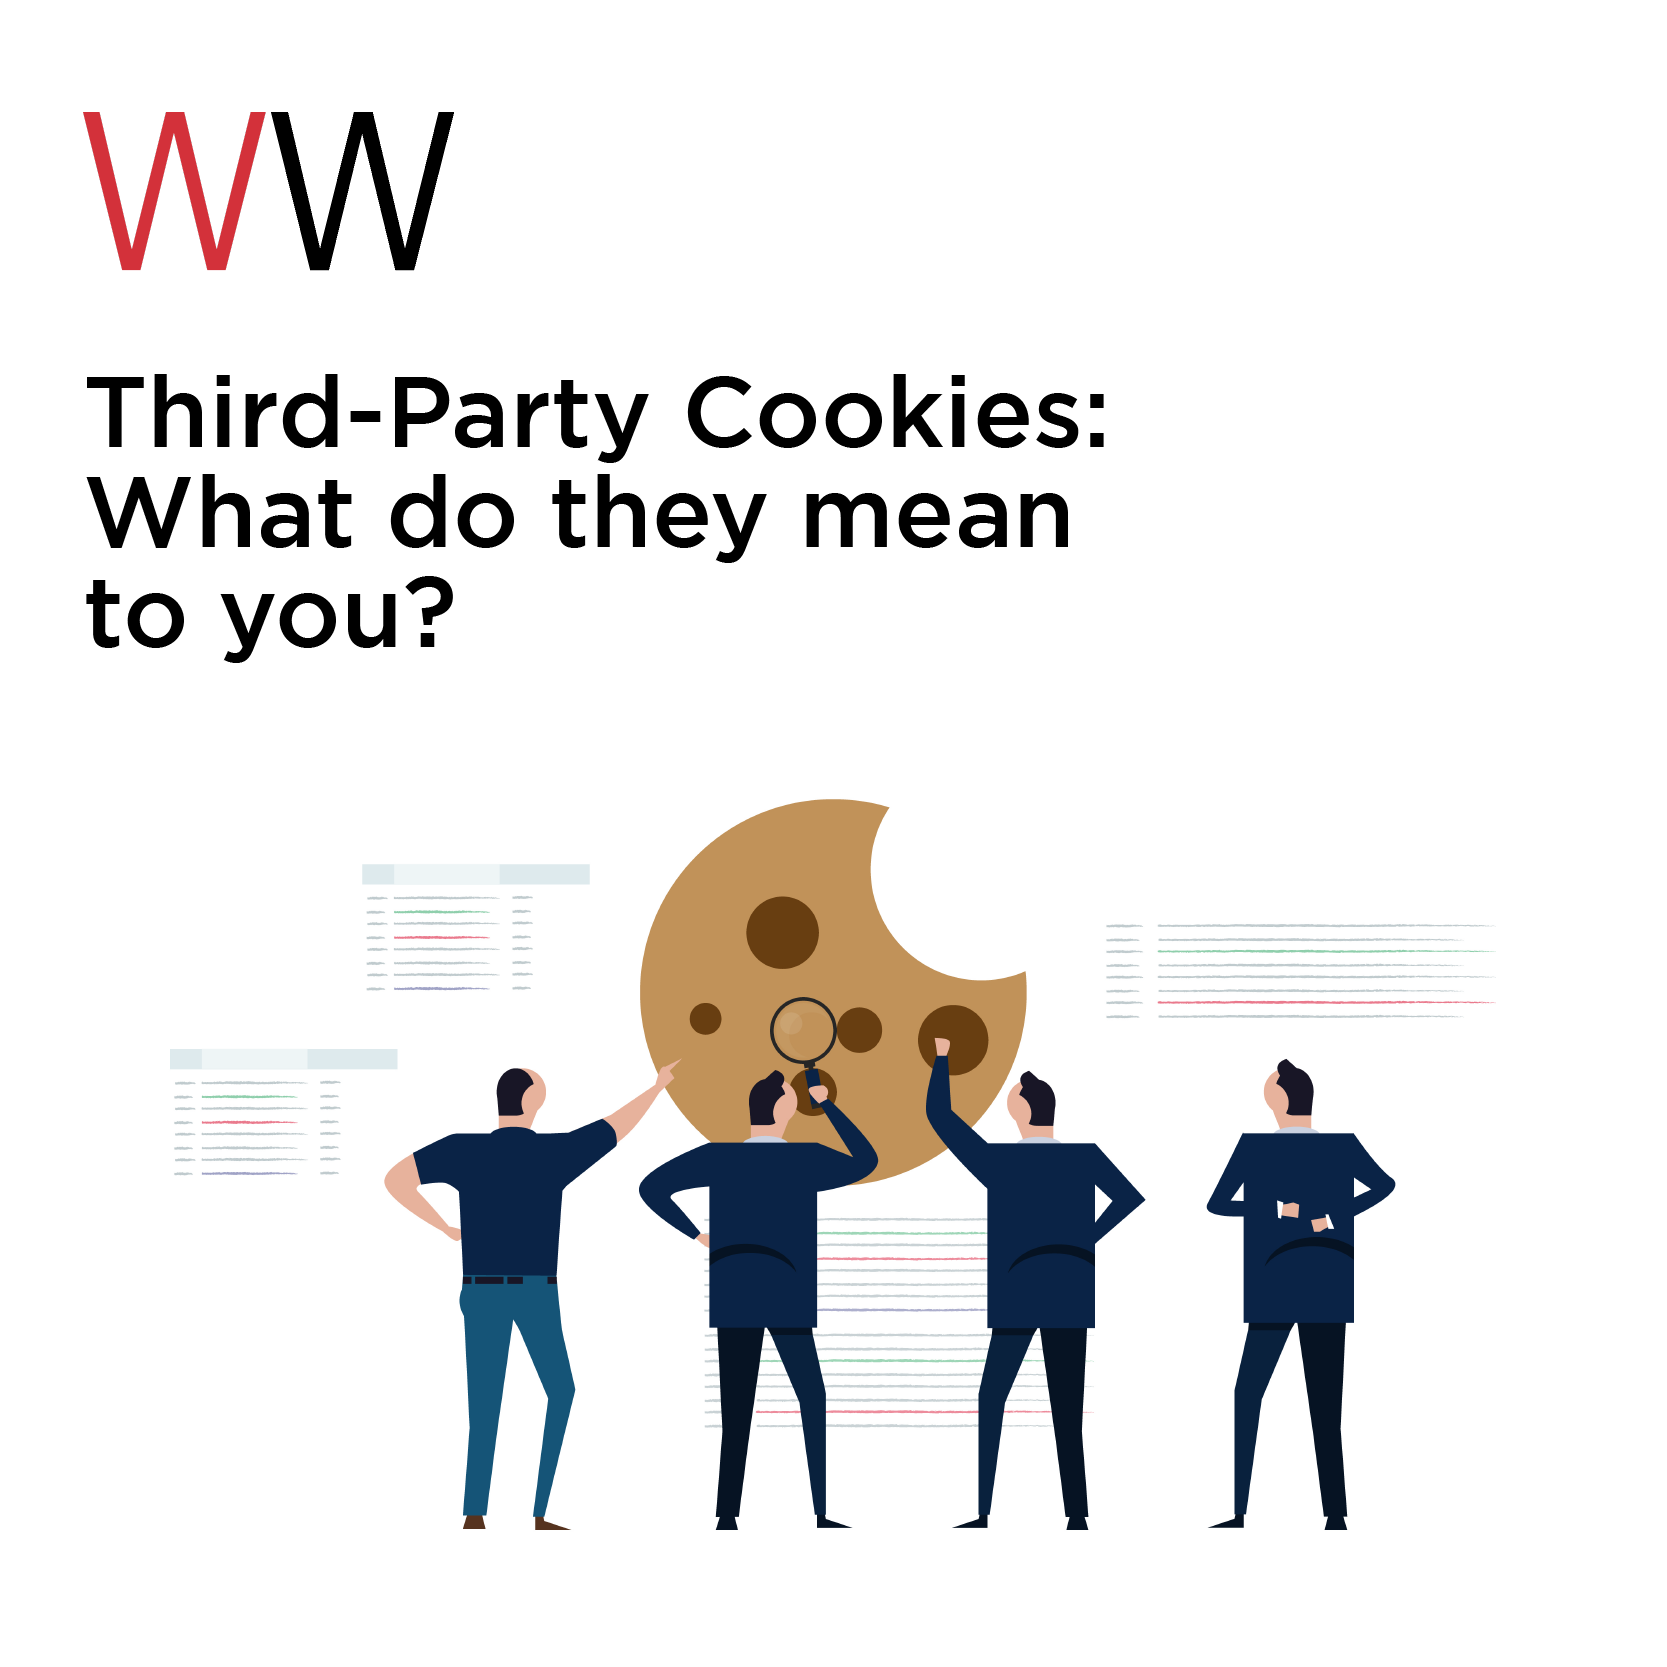 Third-Party Cookies: What do they mean to you?